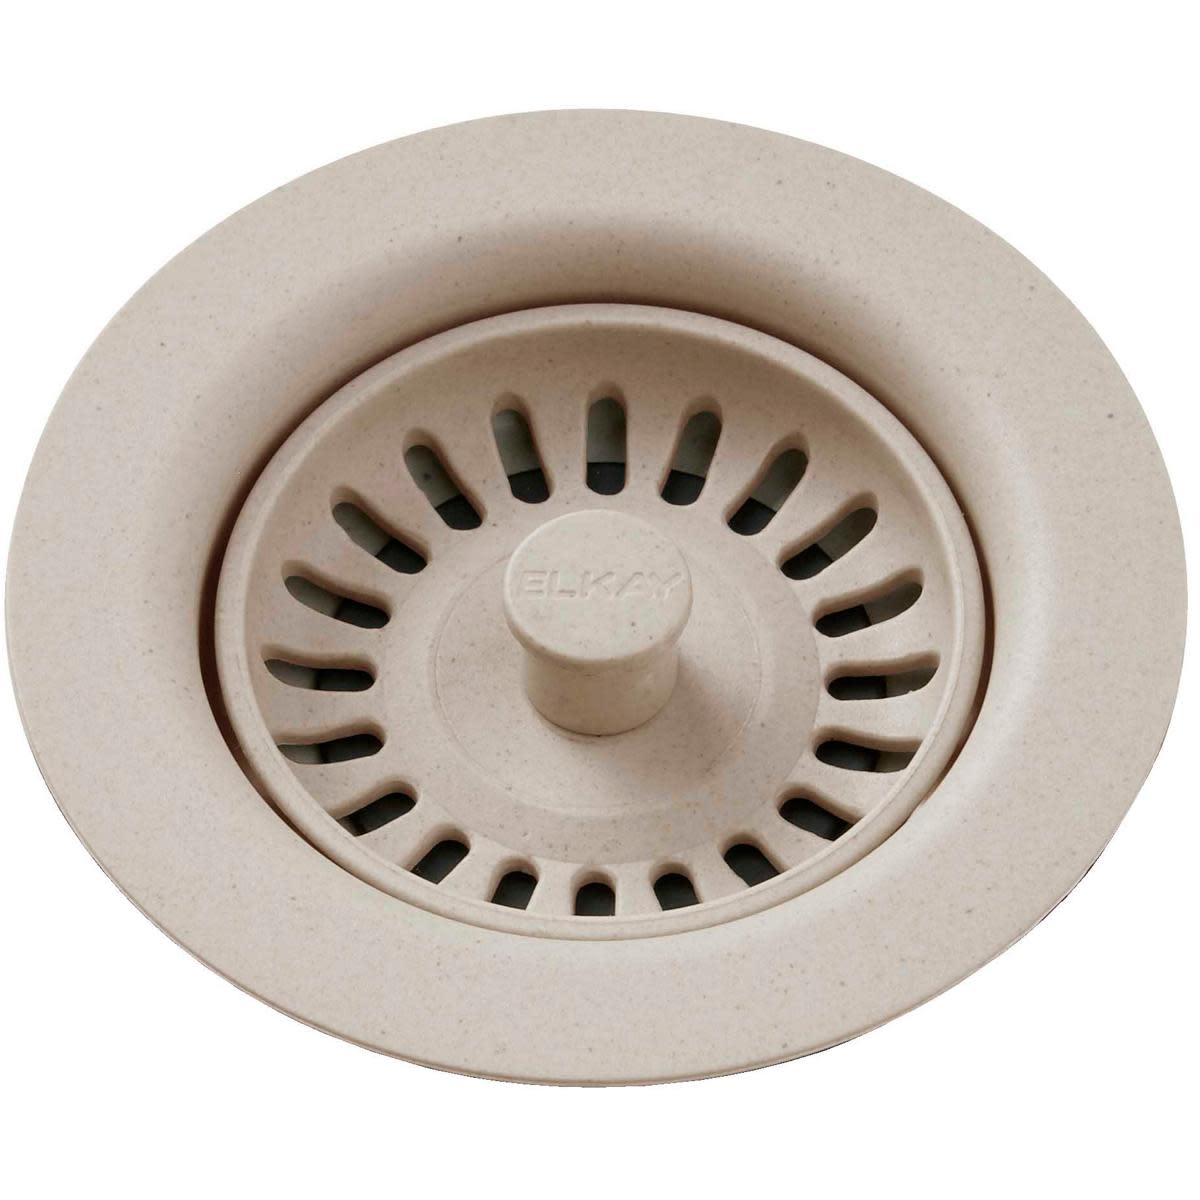 """Elkay LKQS35 3-1/2"""" Drain Fitting with Removable Basket Strainer and Rubber Stopper"""